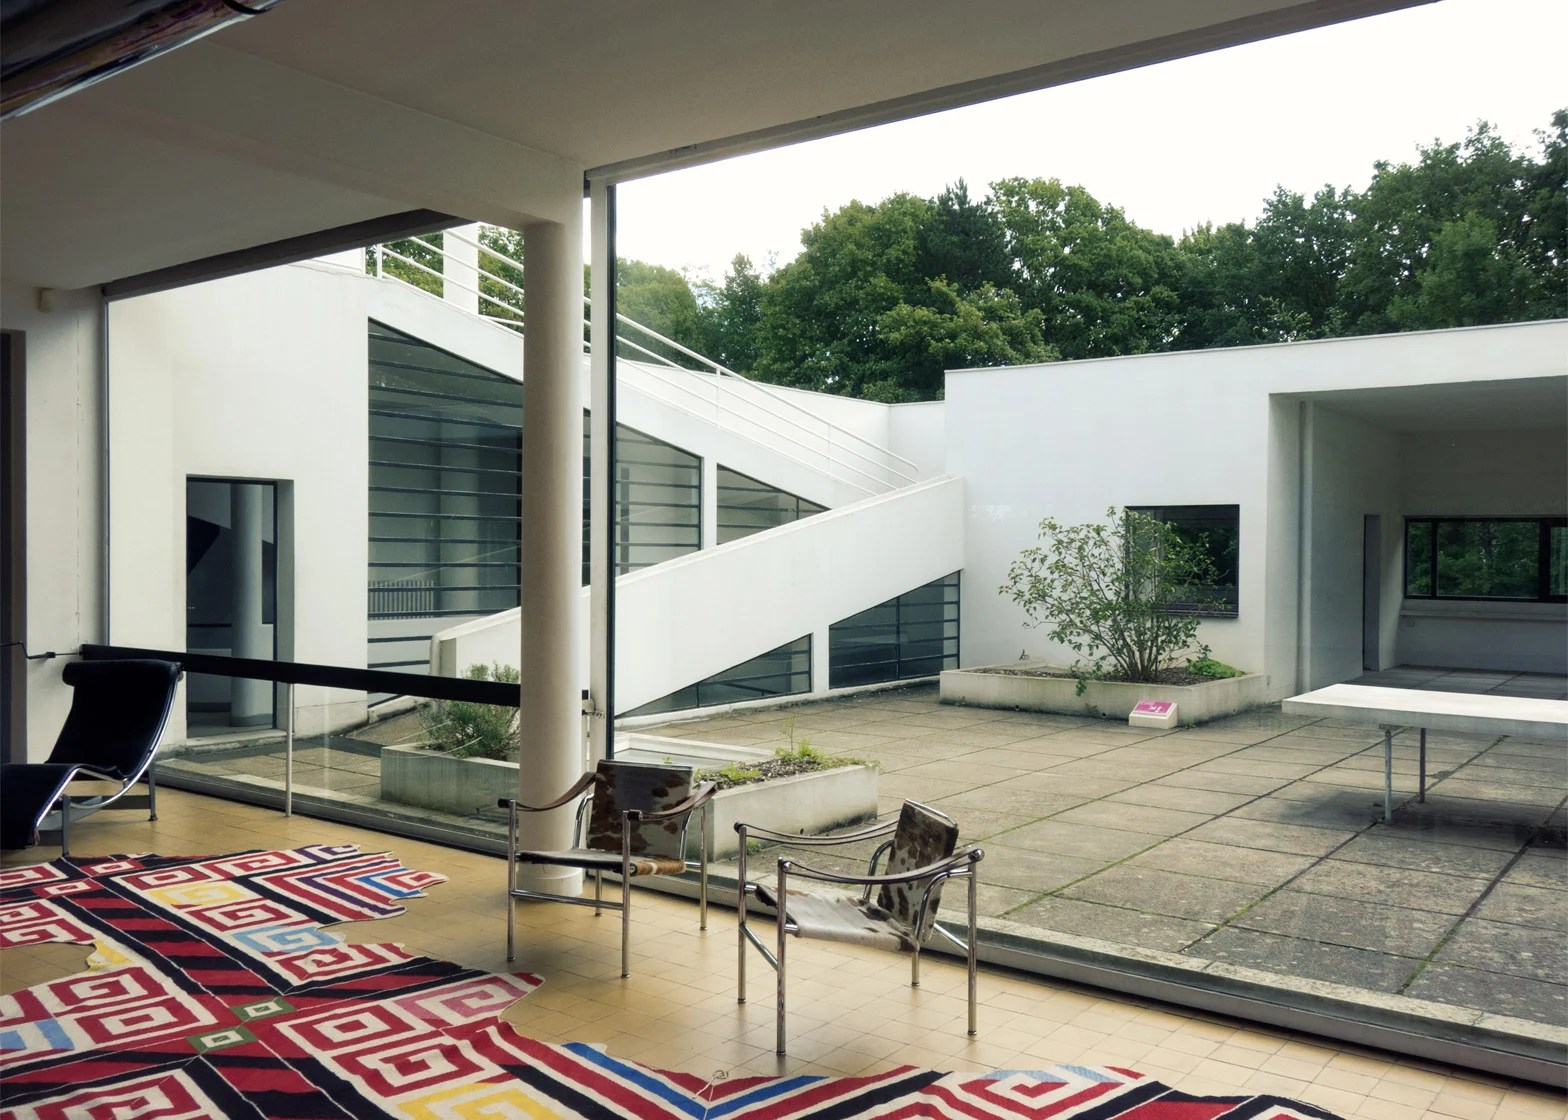 Decoration Villa Moderne Le Corbusier S Villa Savoye Encapsulates The Modernist Style